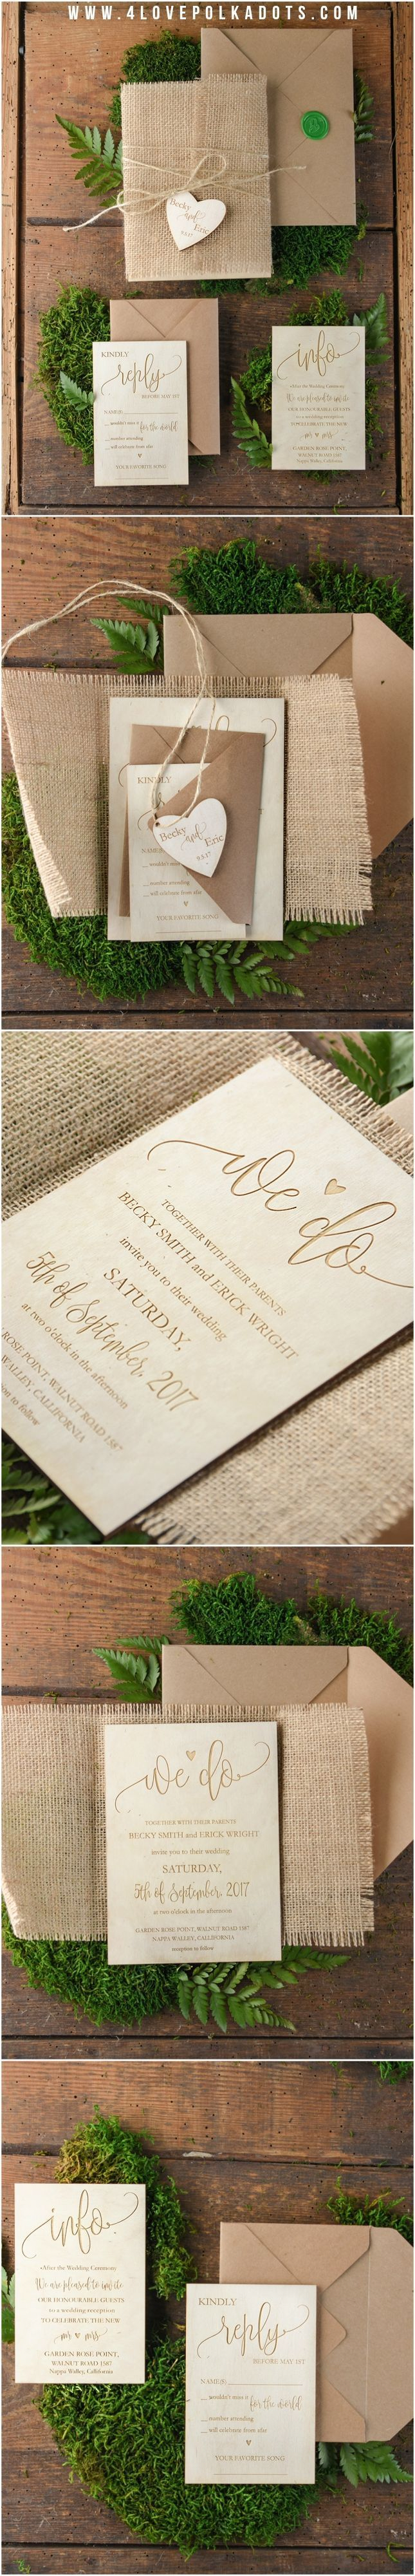 377 best invitations images on Pinterest | Wedding stationery ...